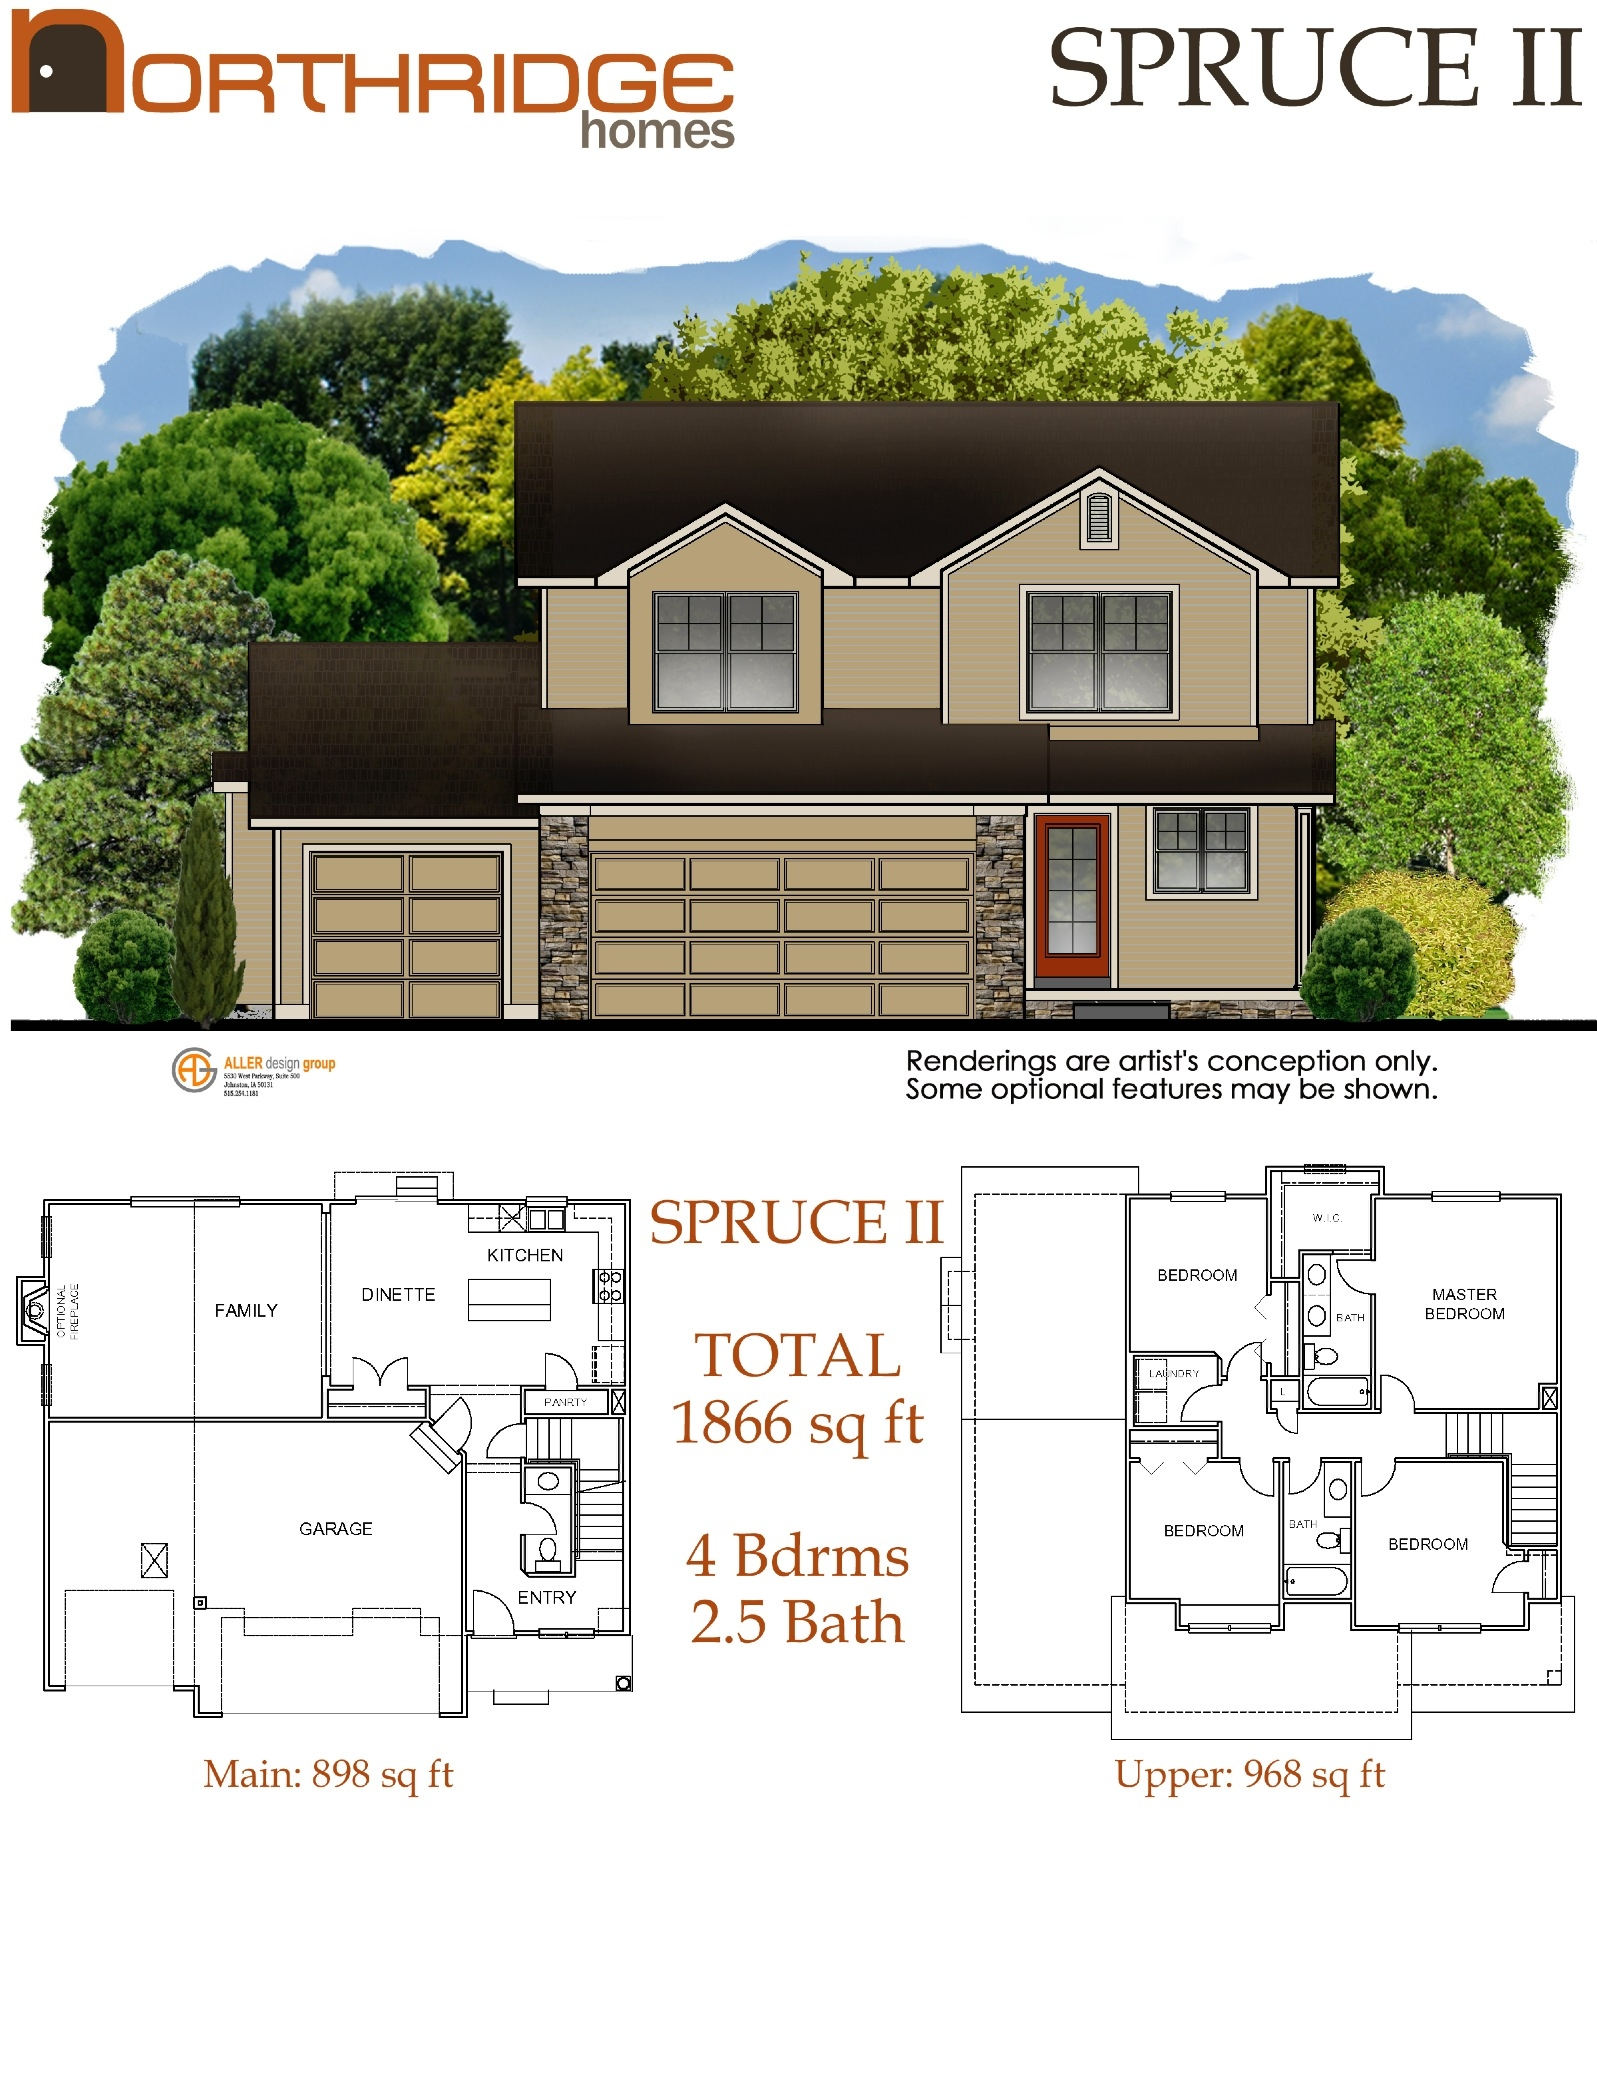 Northridge home floor plans des moines iowa for Iowa home builders floor plans